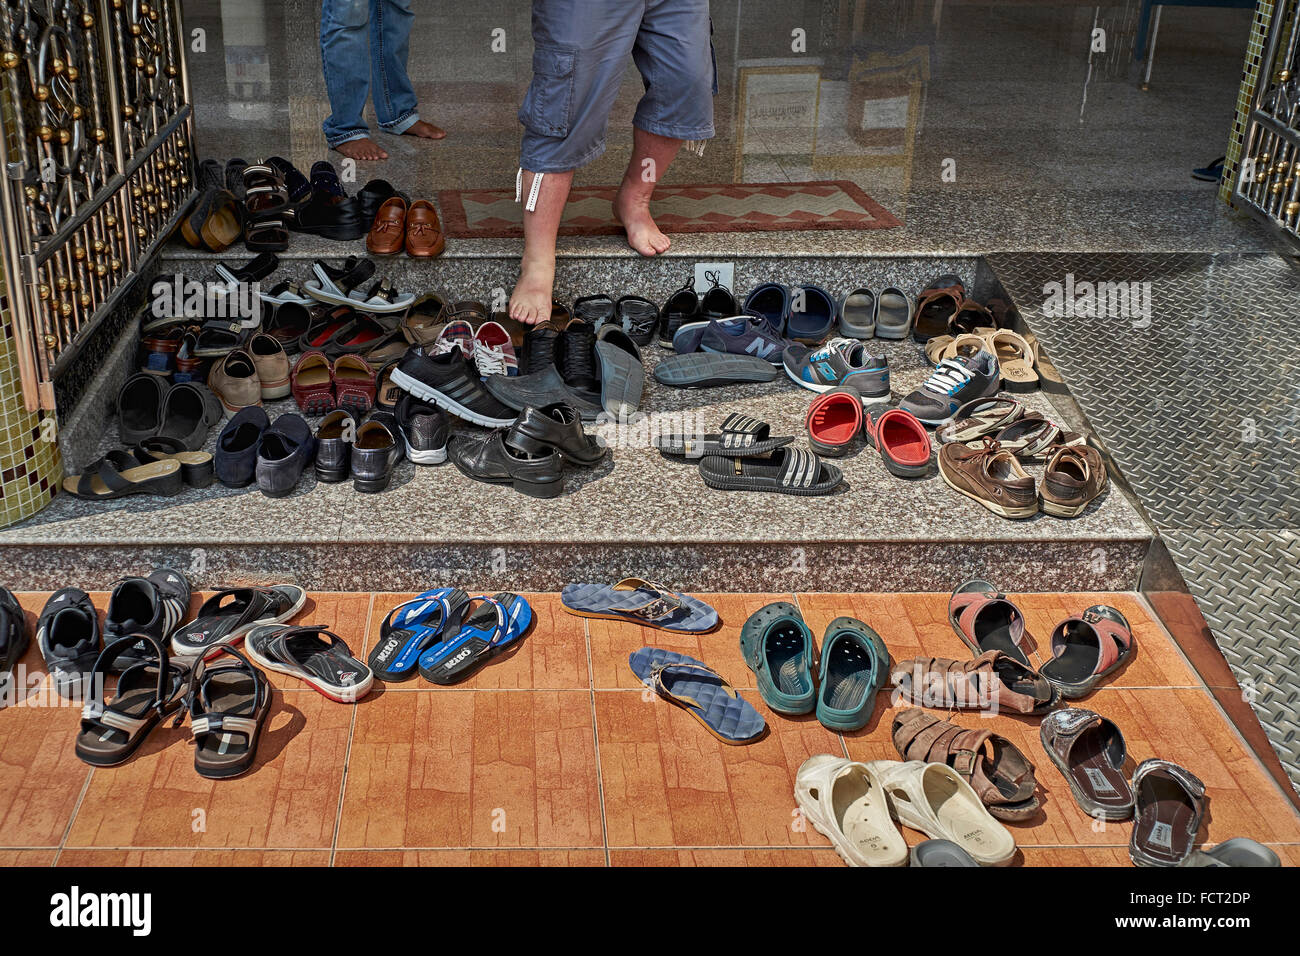 Asian tradition of removing footwear before entering premises. Array of shoes outside a Thailand temple. - Stock Image